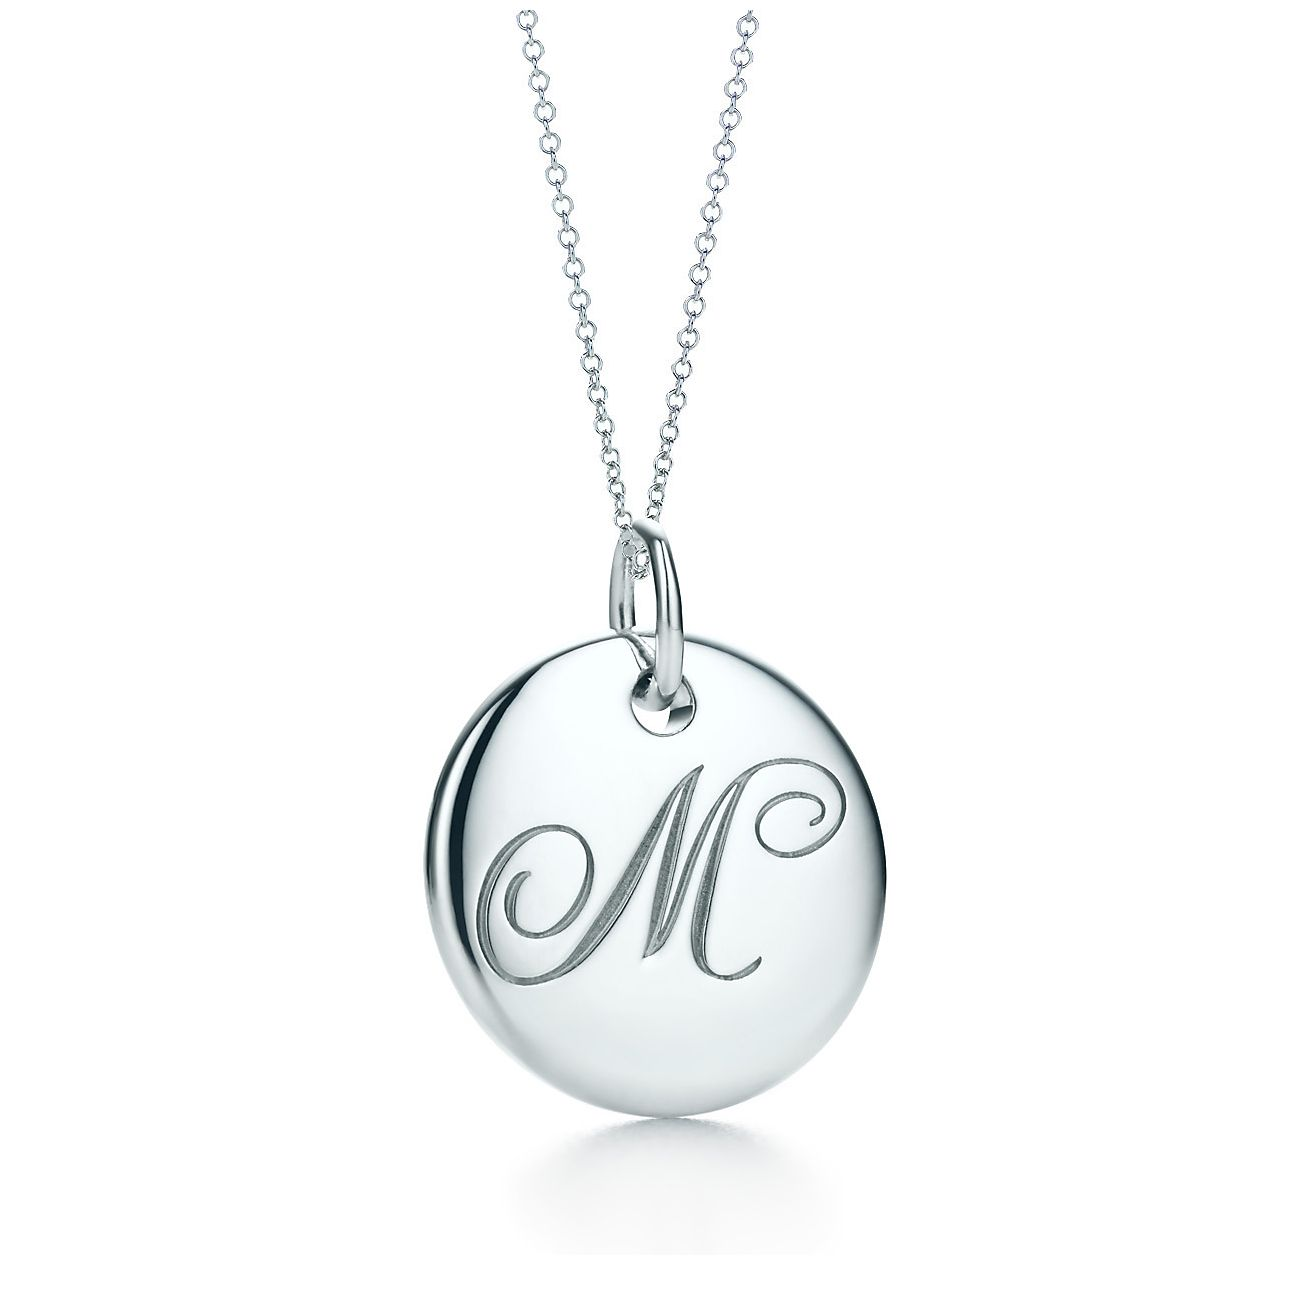 317e281c7 Tiffany Notes alphabet disc charm in silver on a chain. Letters A-Z  available. | Tiffany & Co.